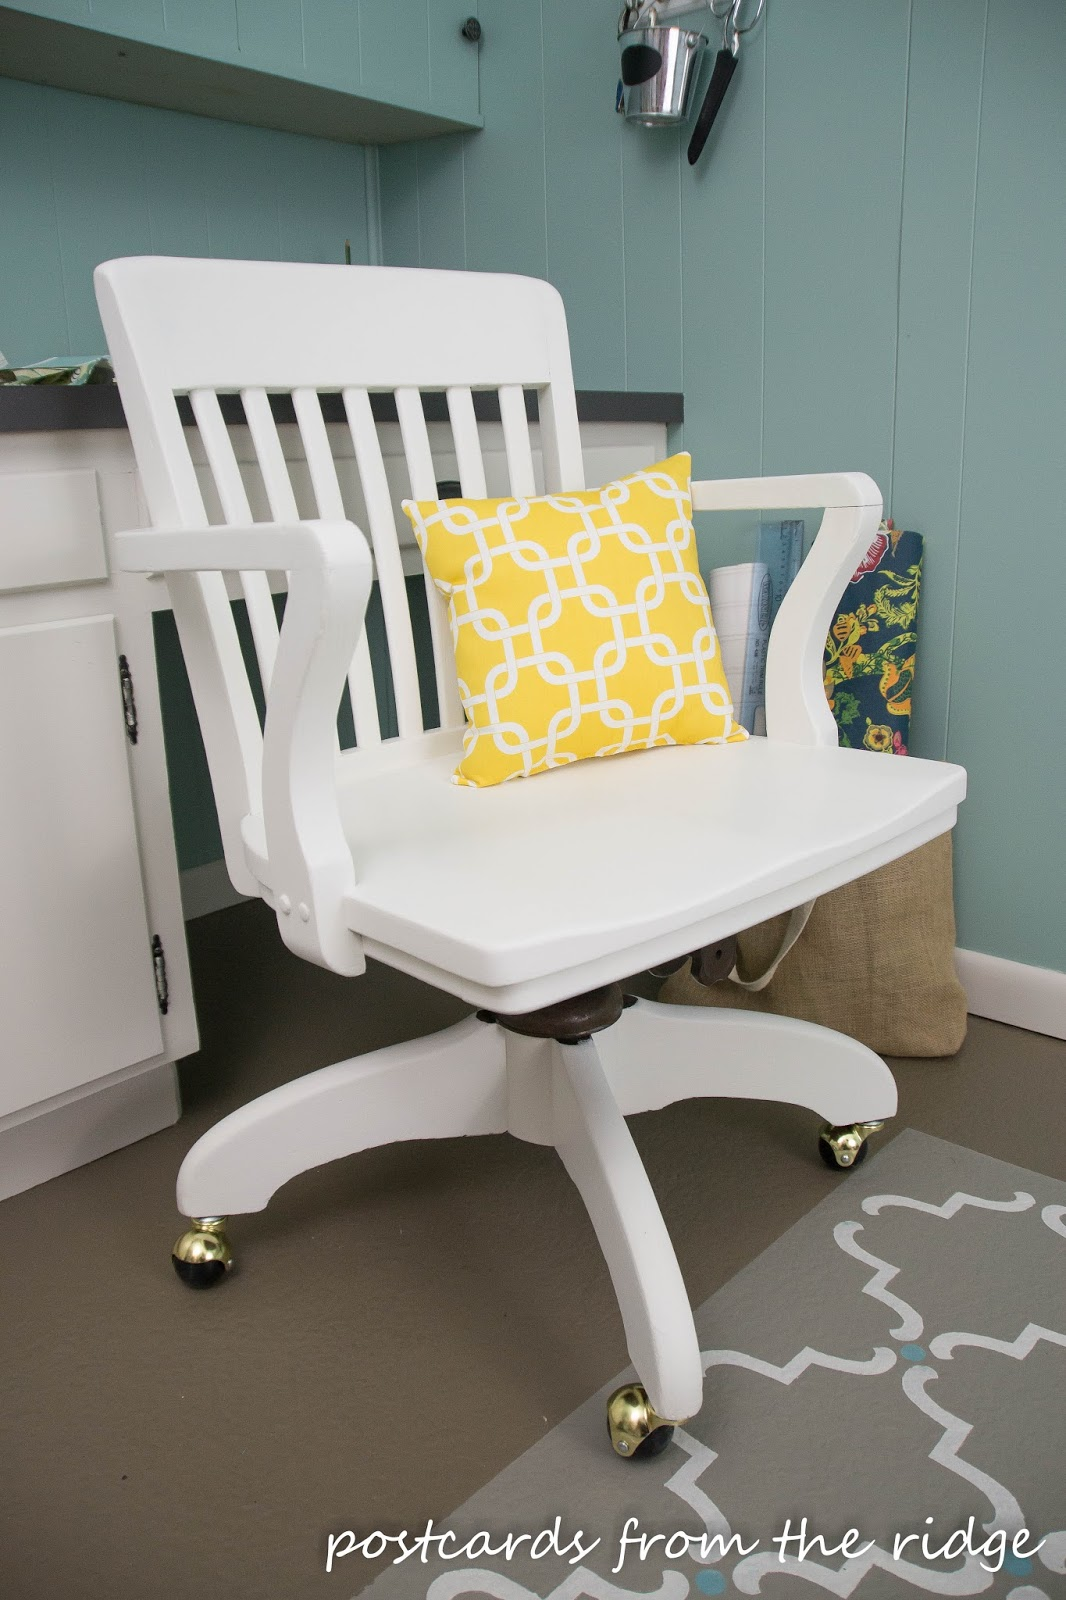 New wheels, a new pillow, and a fresh coat of white dove paint give this wooden swivel office chair a new lease on life.